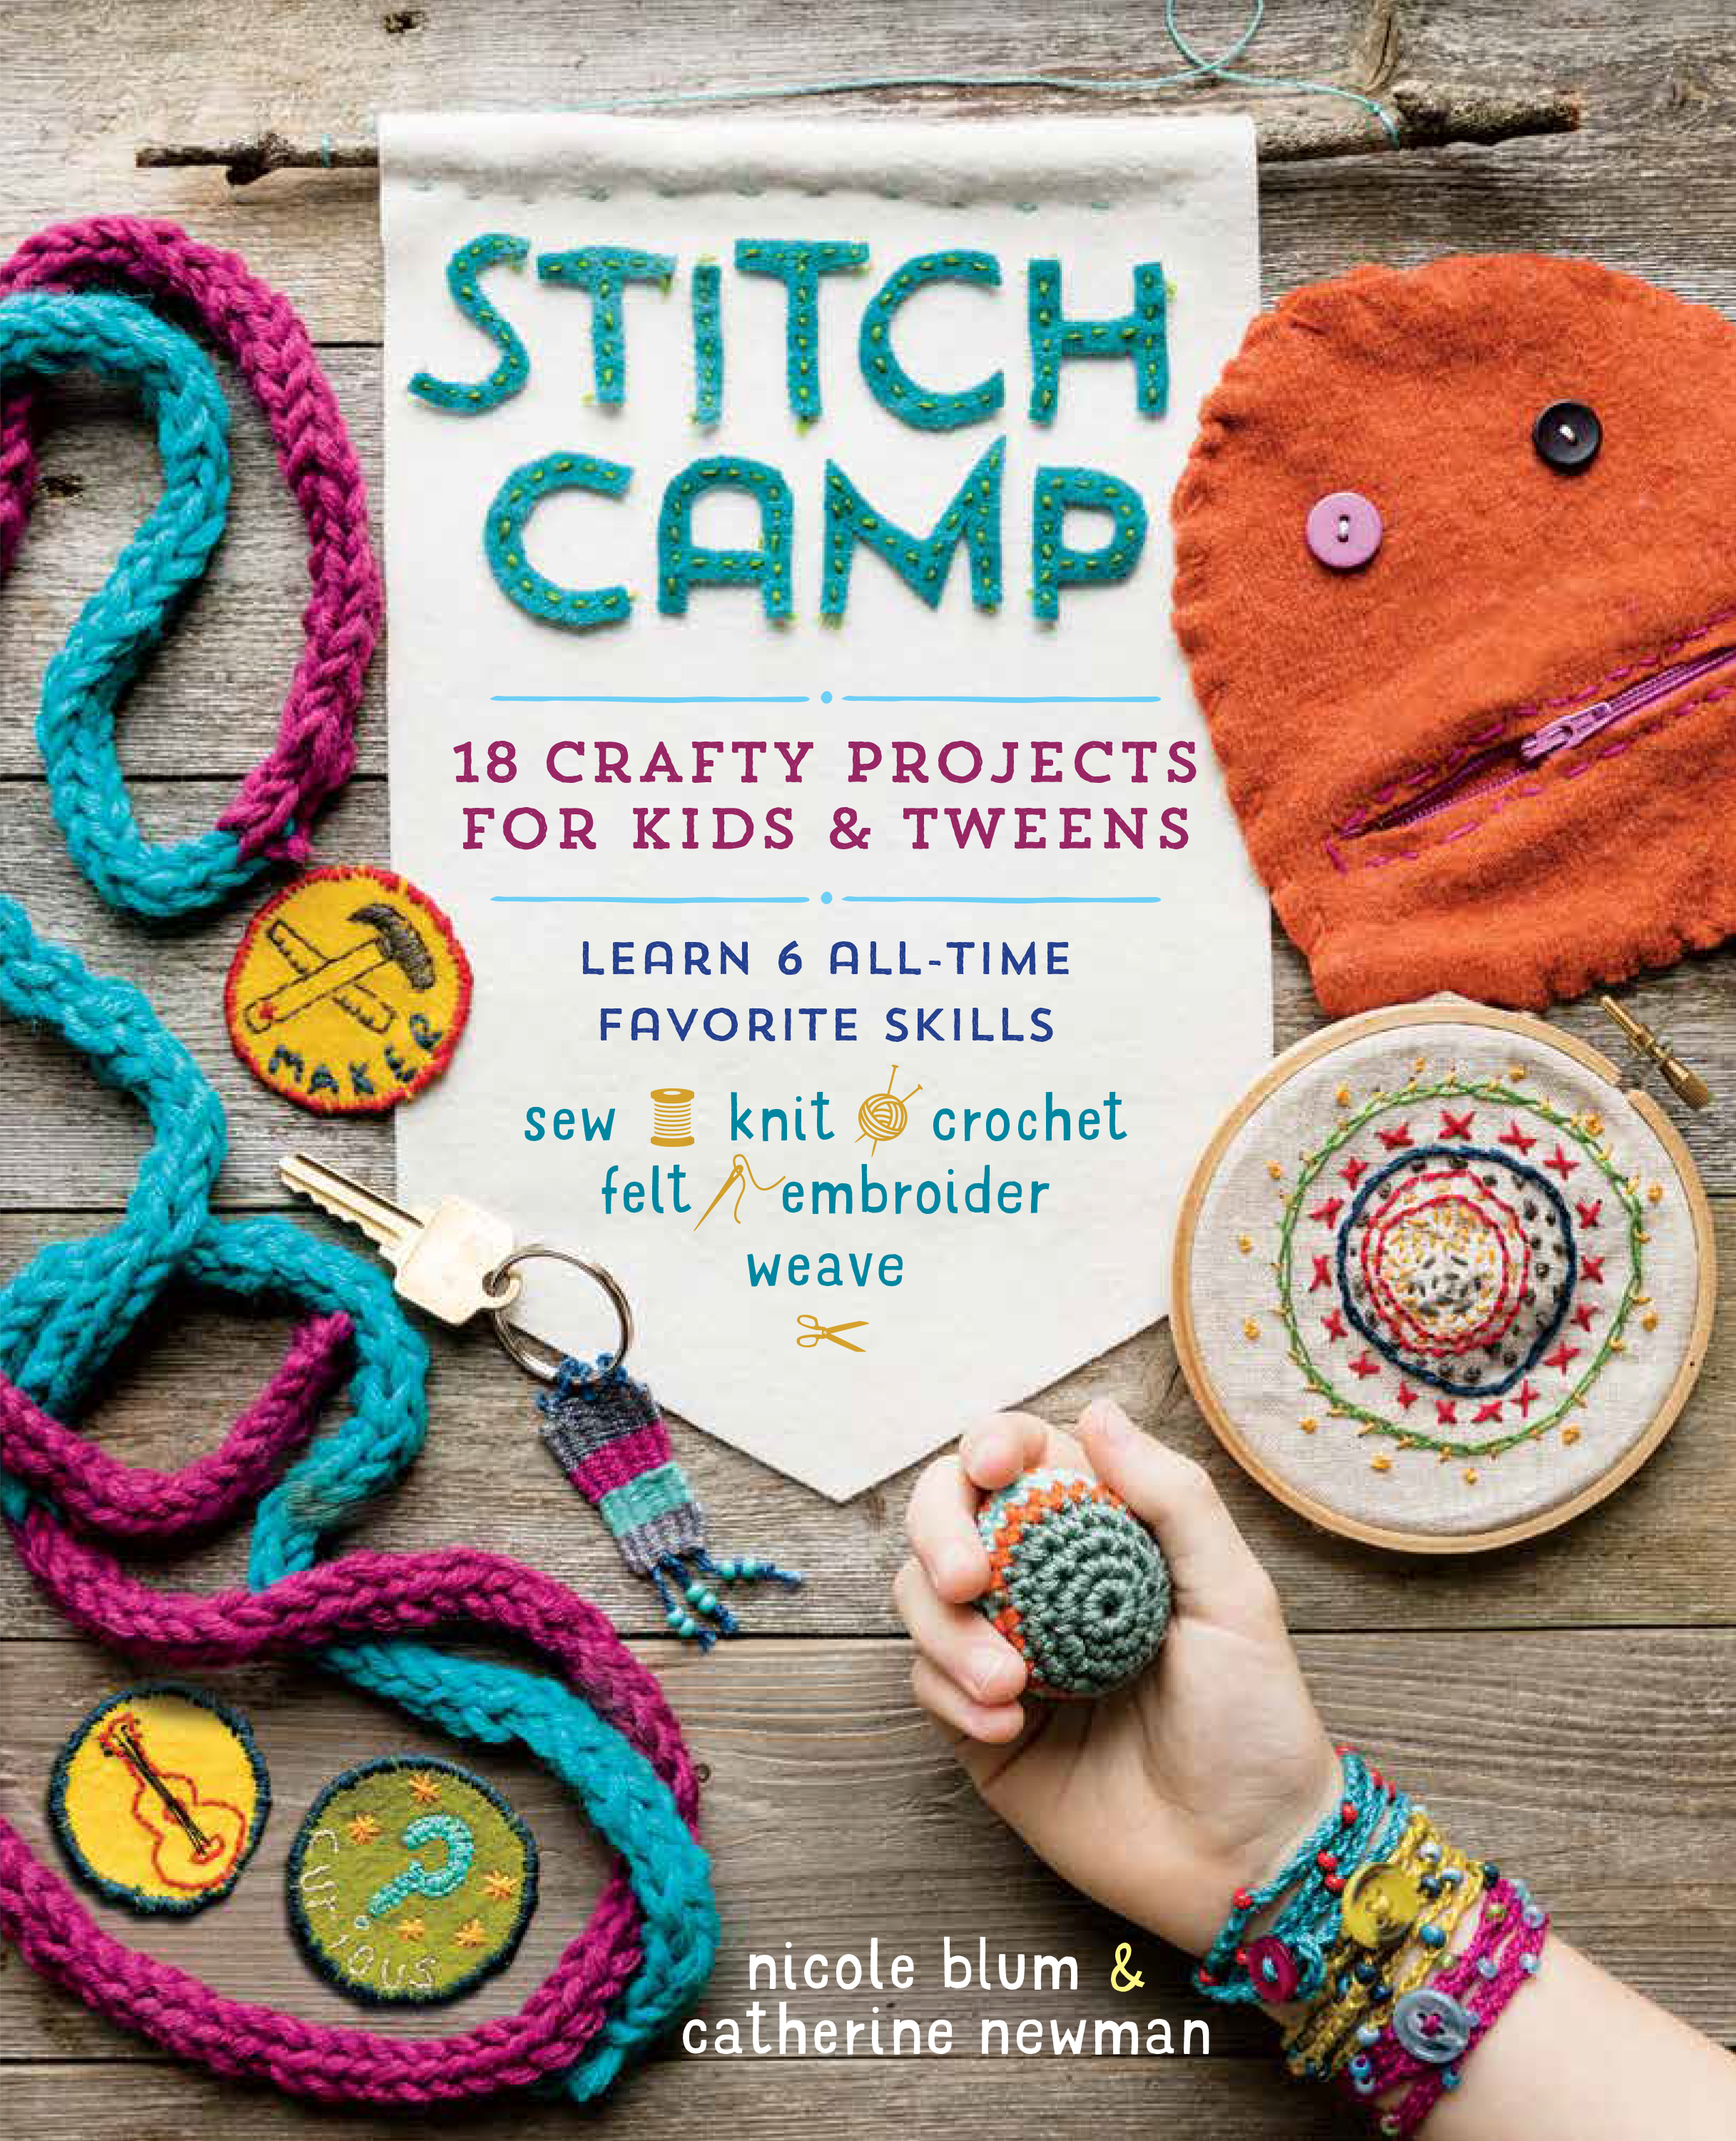 Stitch Camp 18 Crafty Projects for Kids & Tweens – Learn 6 All-Time Favorite Skills: Sew, Knit, Crochet, Felt, Embroider & Weave - Nicole Blum